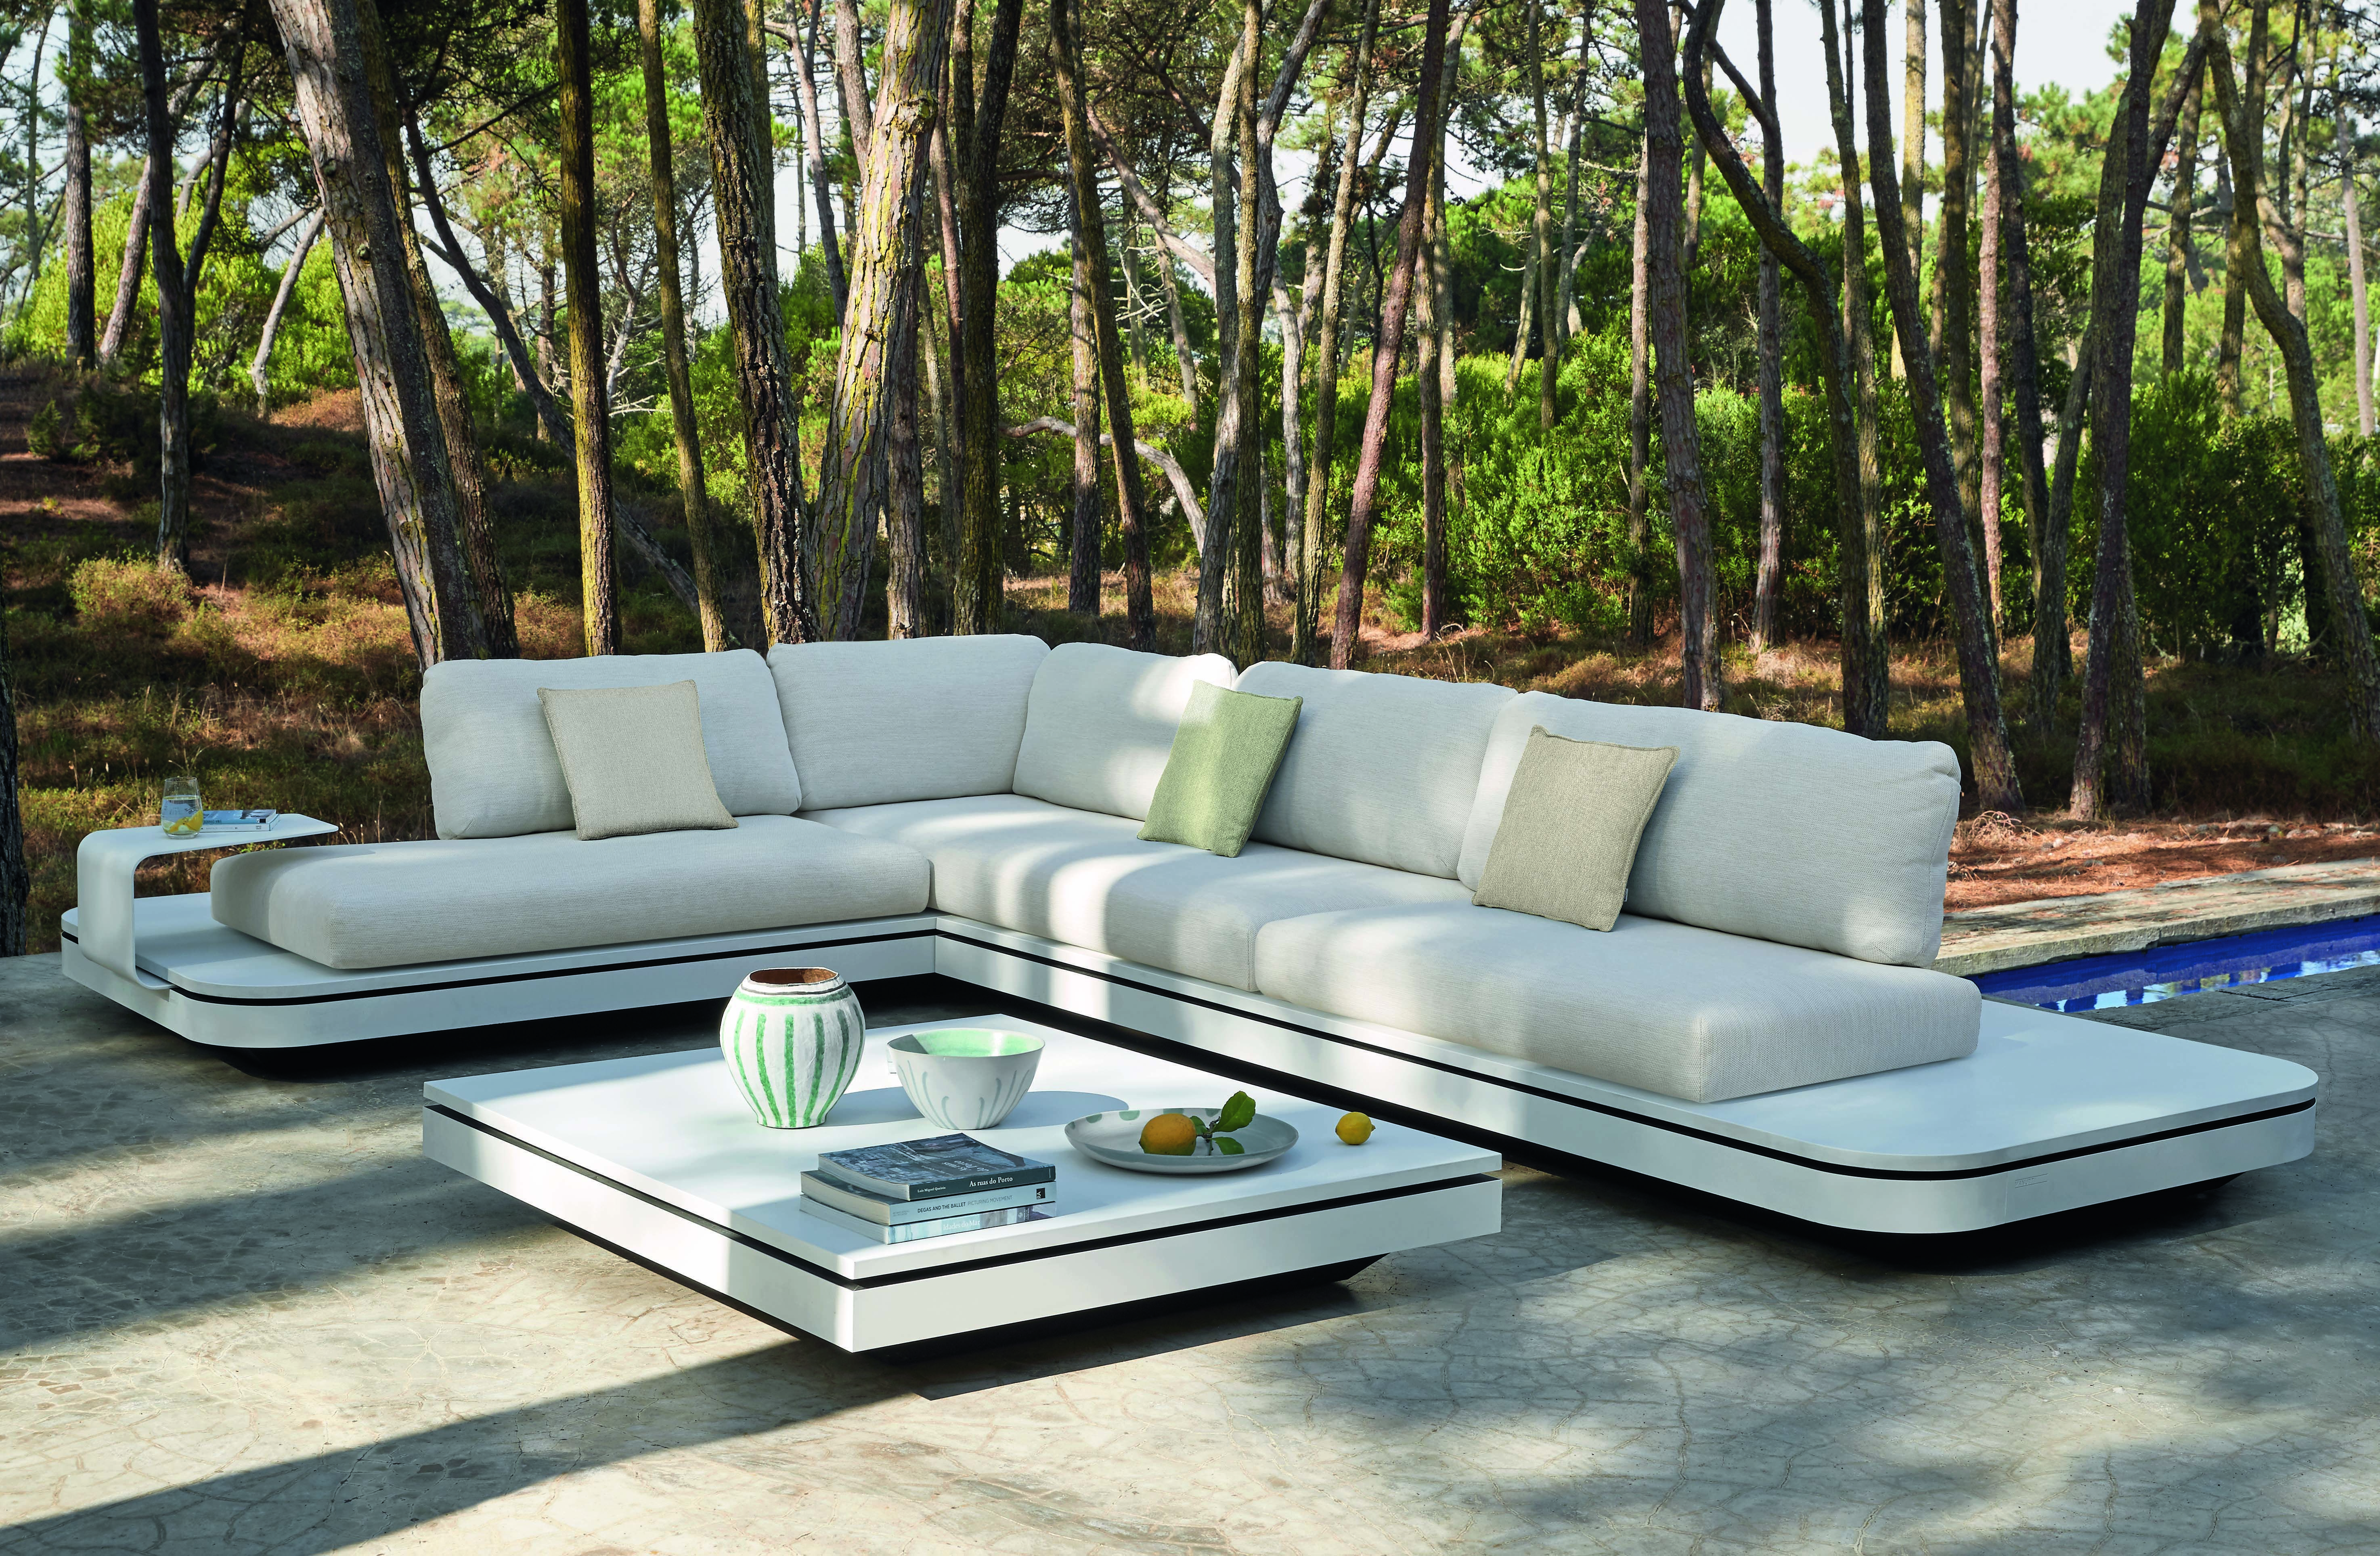 Manutti This Ultra Modular And Movable Seating Garden Sofa